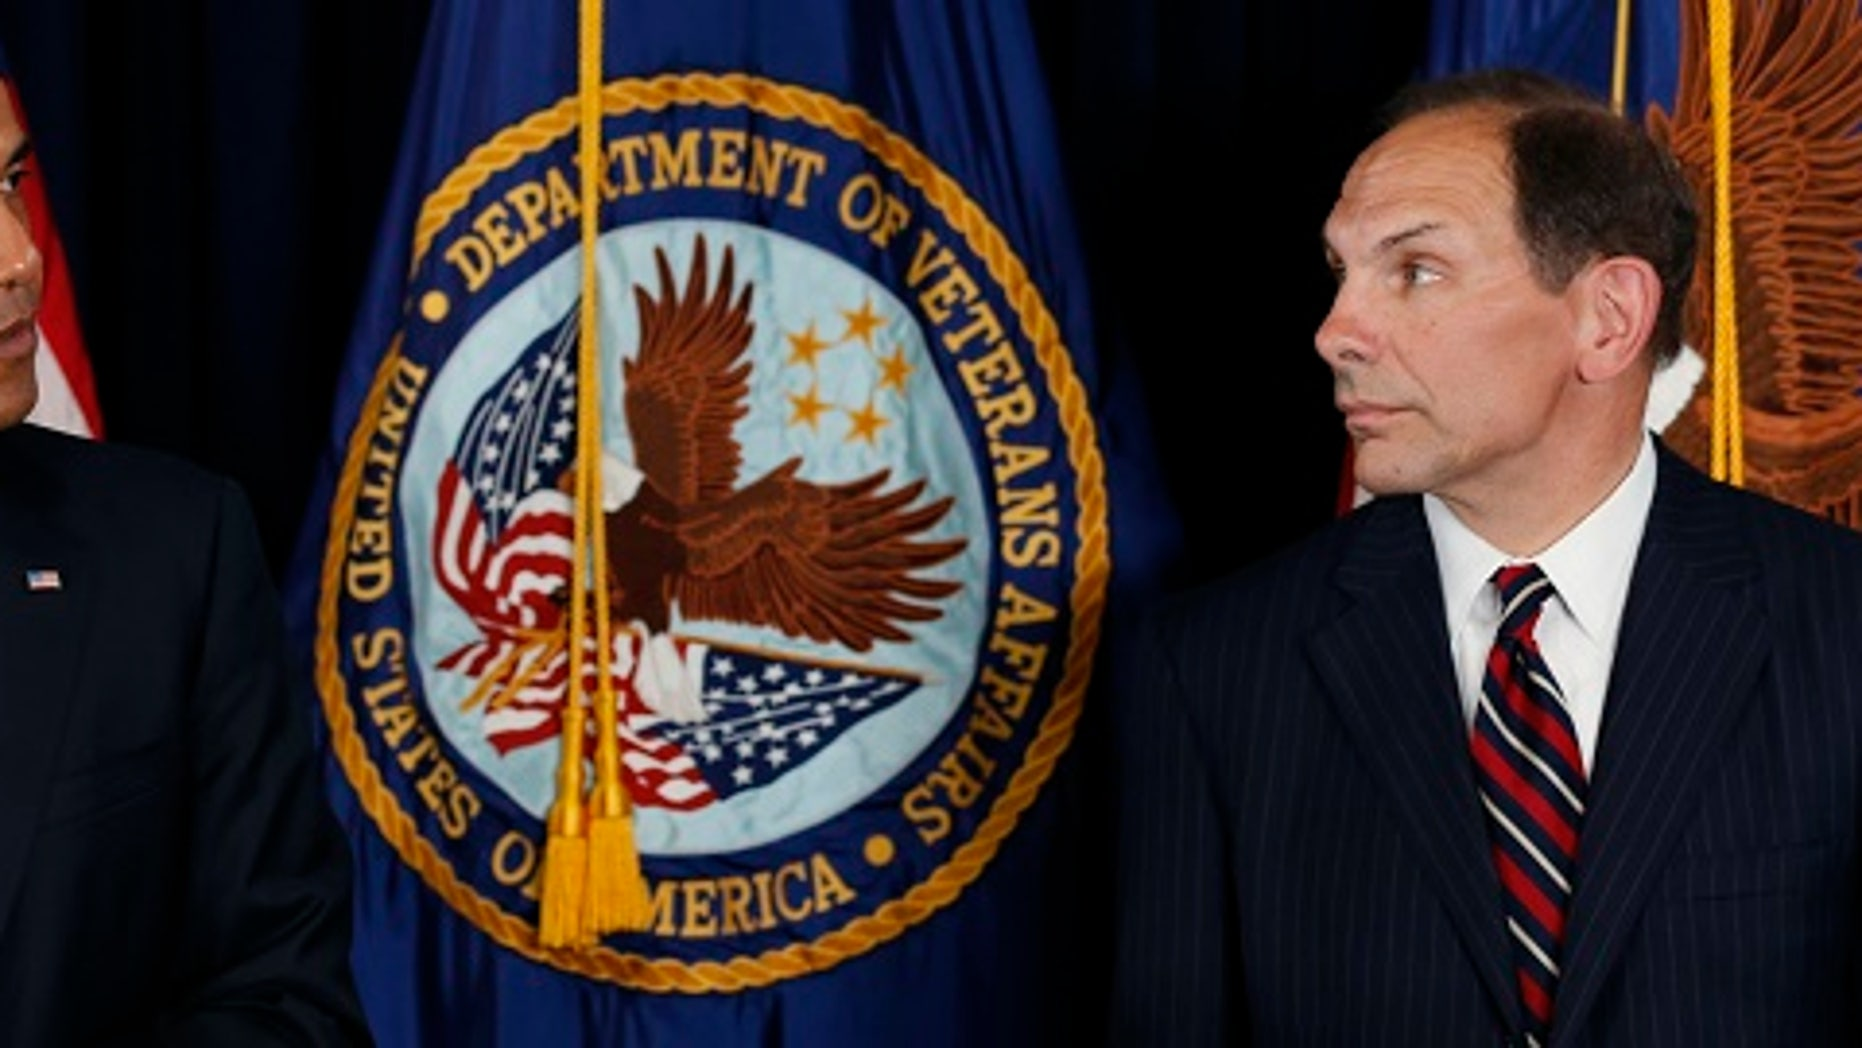 U.S. President Barack Obama announces his choice of former Procter & Gamble Chief Executive Bob McDonald, (R) an Army veteran, as his nominee to be the next secretary of veterans affairs at the VA in Washington June 30, 2014. If confirmed by the Senate, McDonald would be tasked with repairing the Veterans Administration after widespread evidence of delays in military veterans getting healthcare at VA facilities. REUTERS/Kevin Lamarque  (UNITED STATES - Tags: POLITICS MILITARY HEALTH) - RTR3WJ27